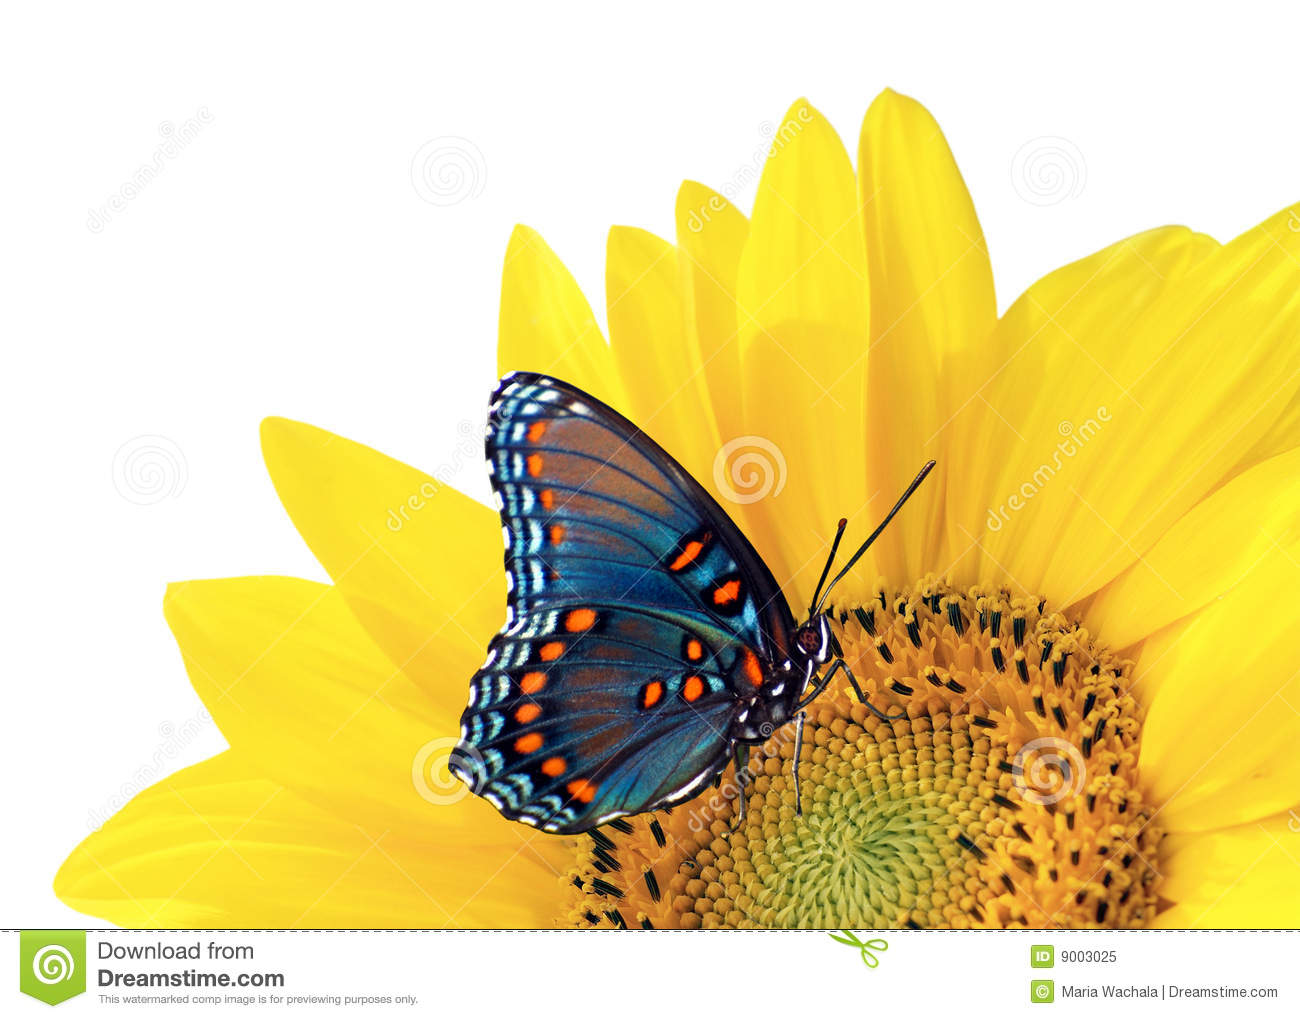 Sunflower and blue butterfly